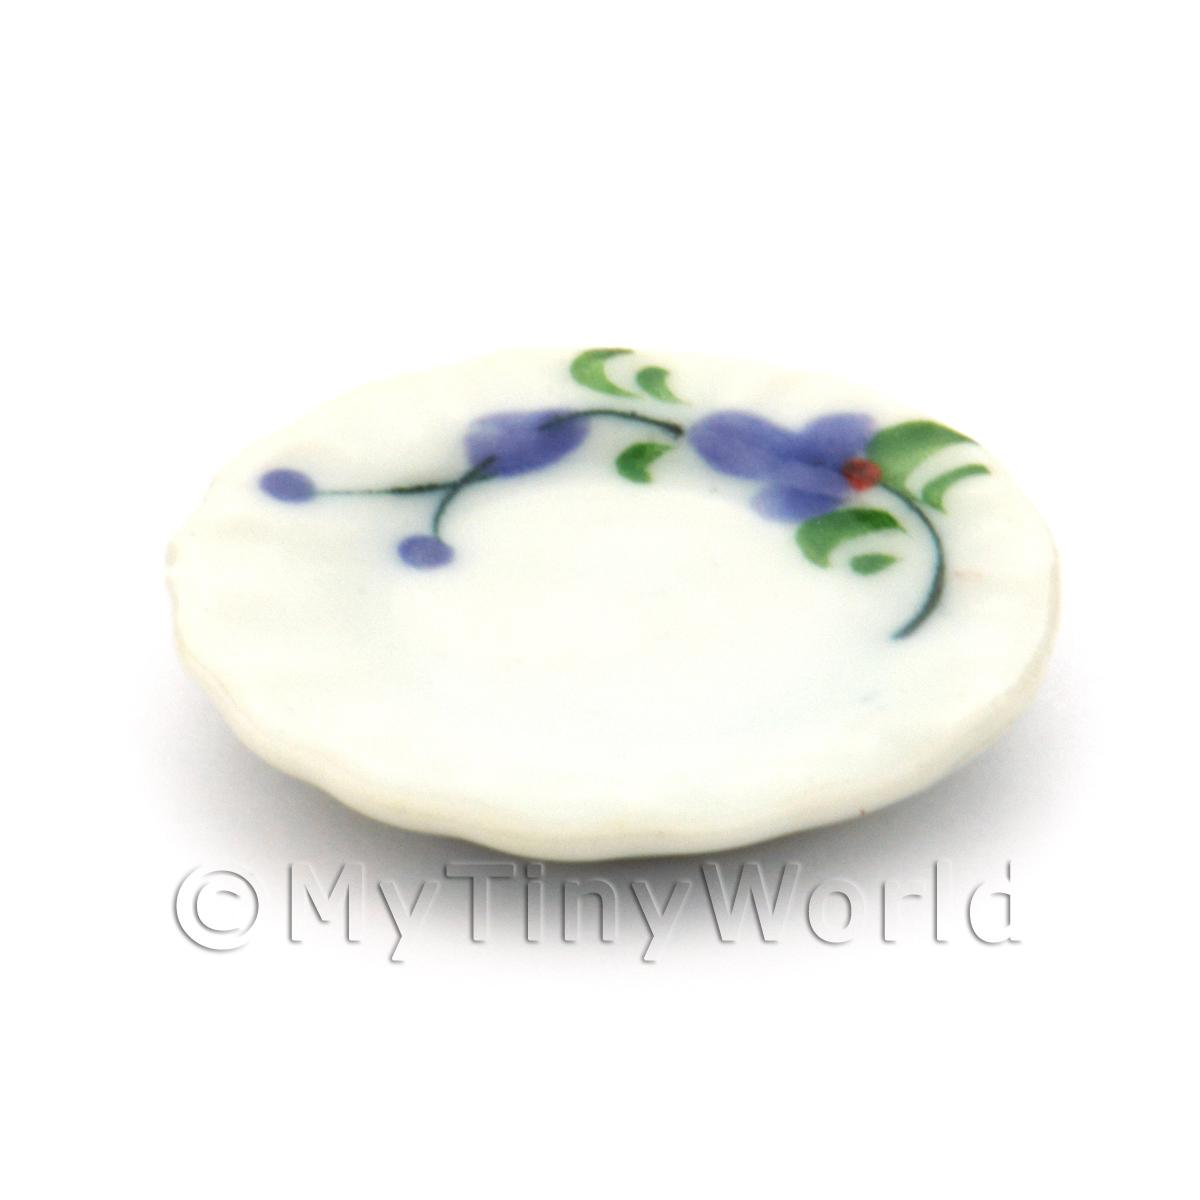 Dolls House Miniature Purple Orchid Design Ceramic 22mm Fluted Plate